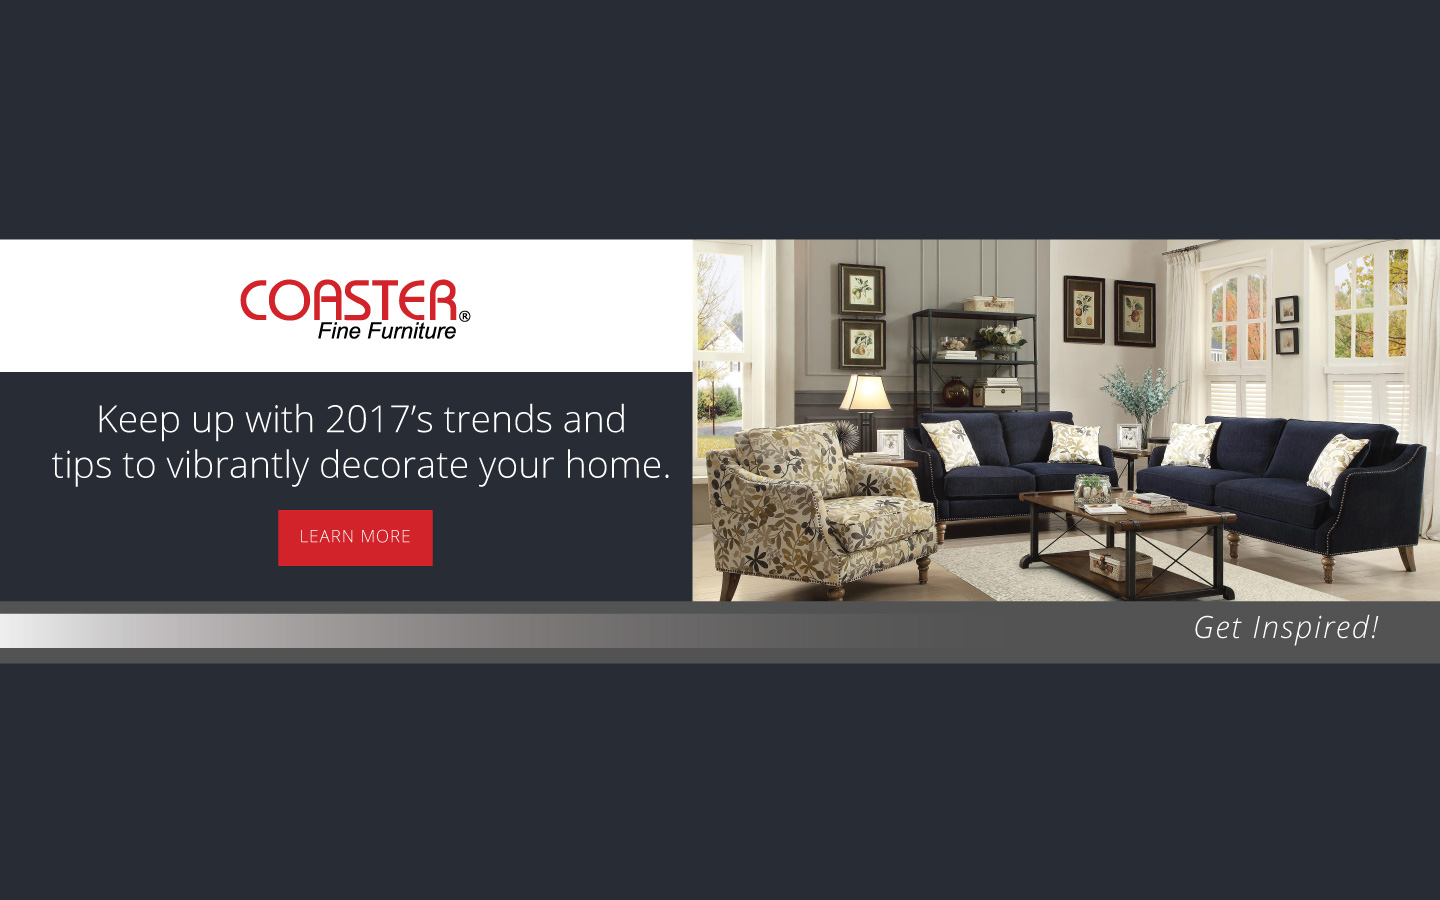 Elegant ... Boulder Furniture And Mattress Synchrony Financial Coaster Brand  Landing Page 2017 ...